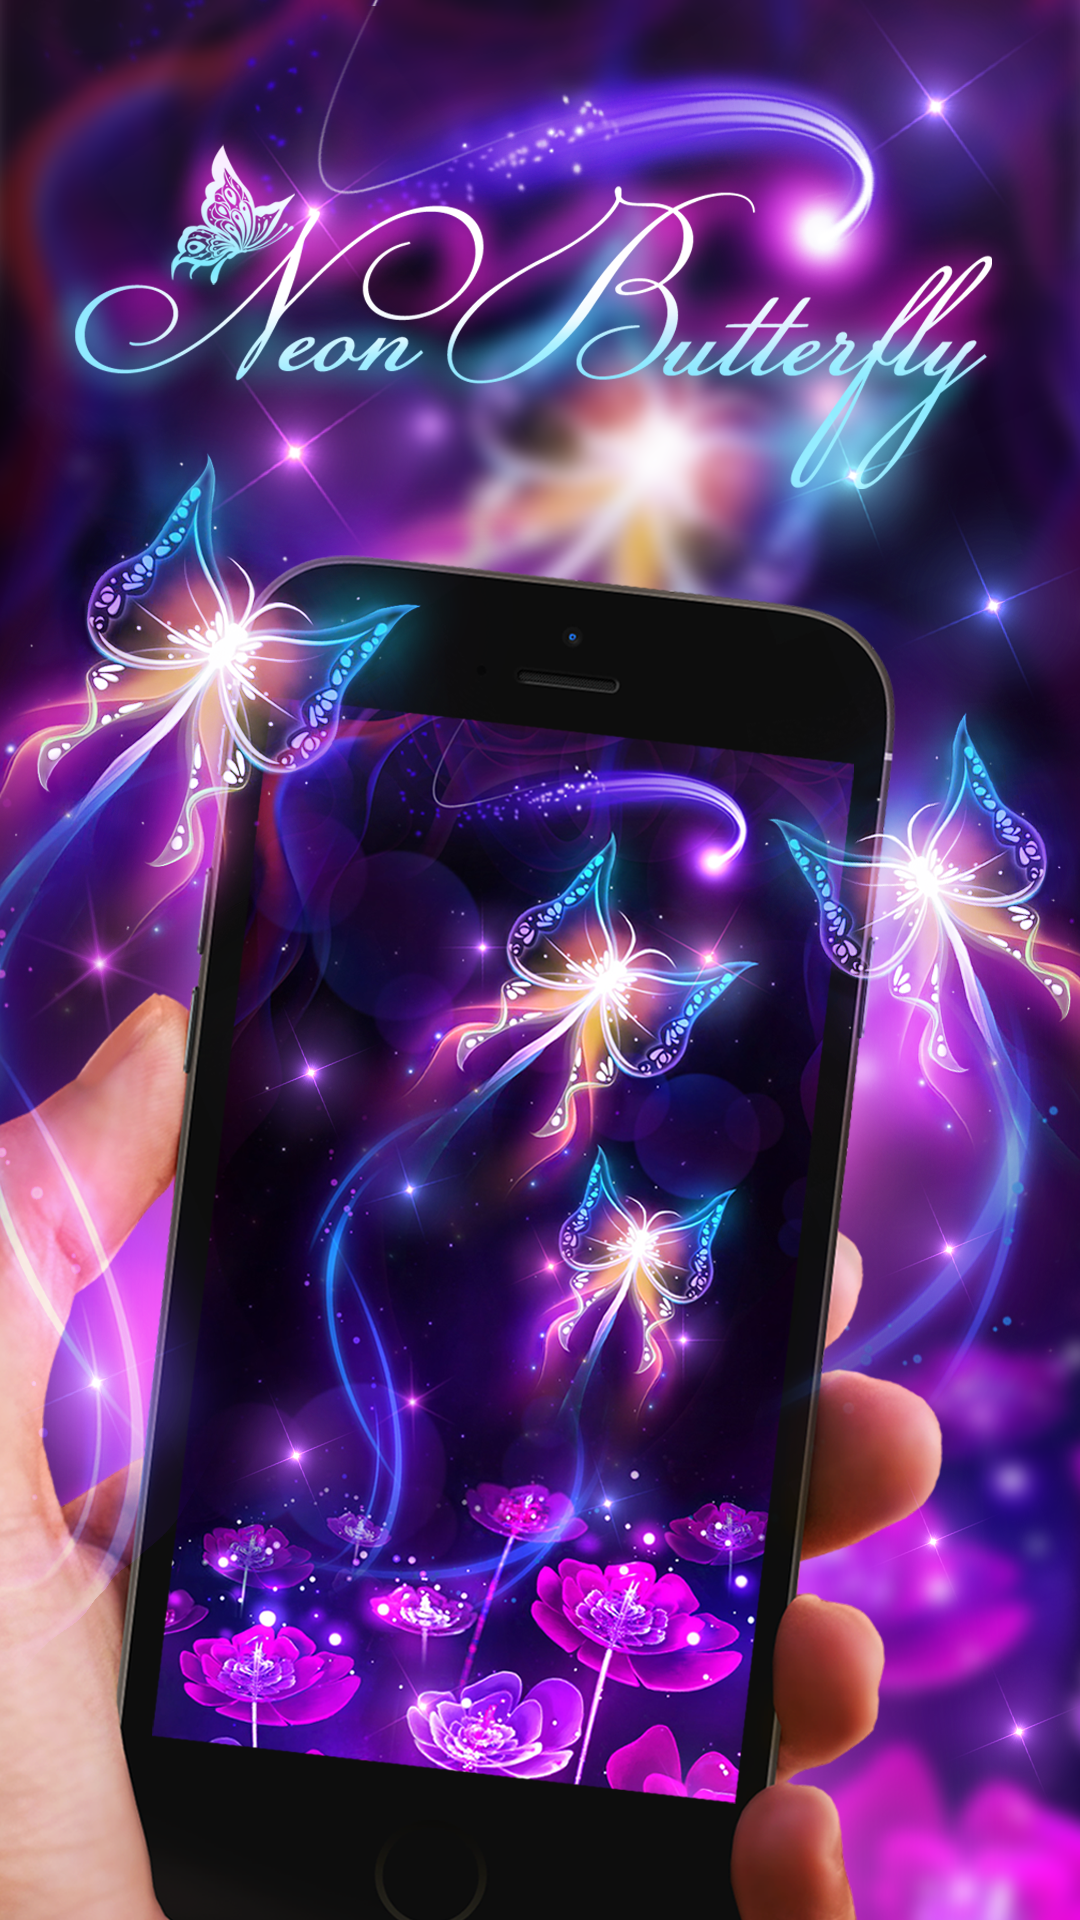 Neon butterfly live wallpaper! Live wallpapers